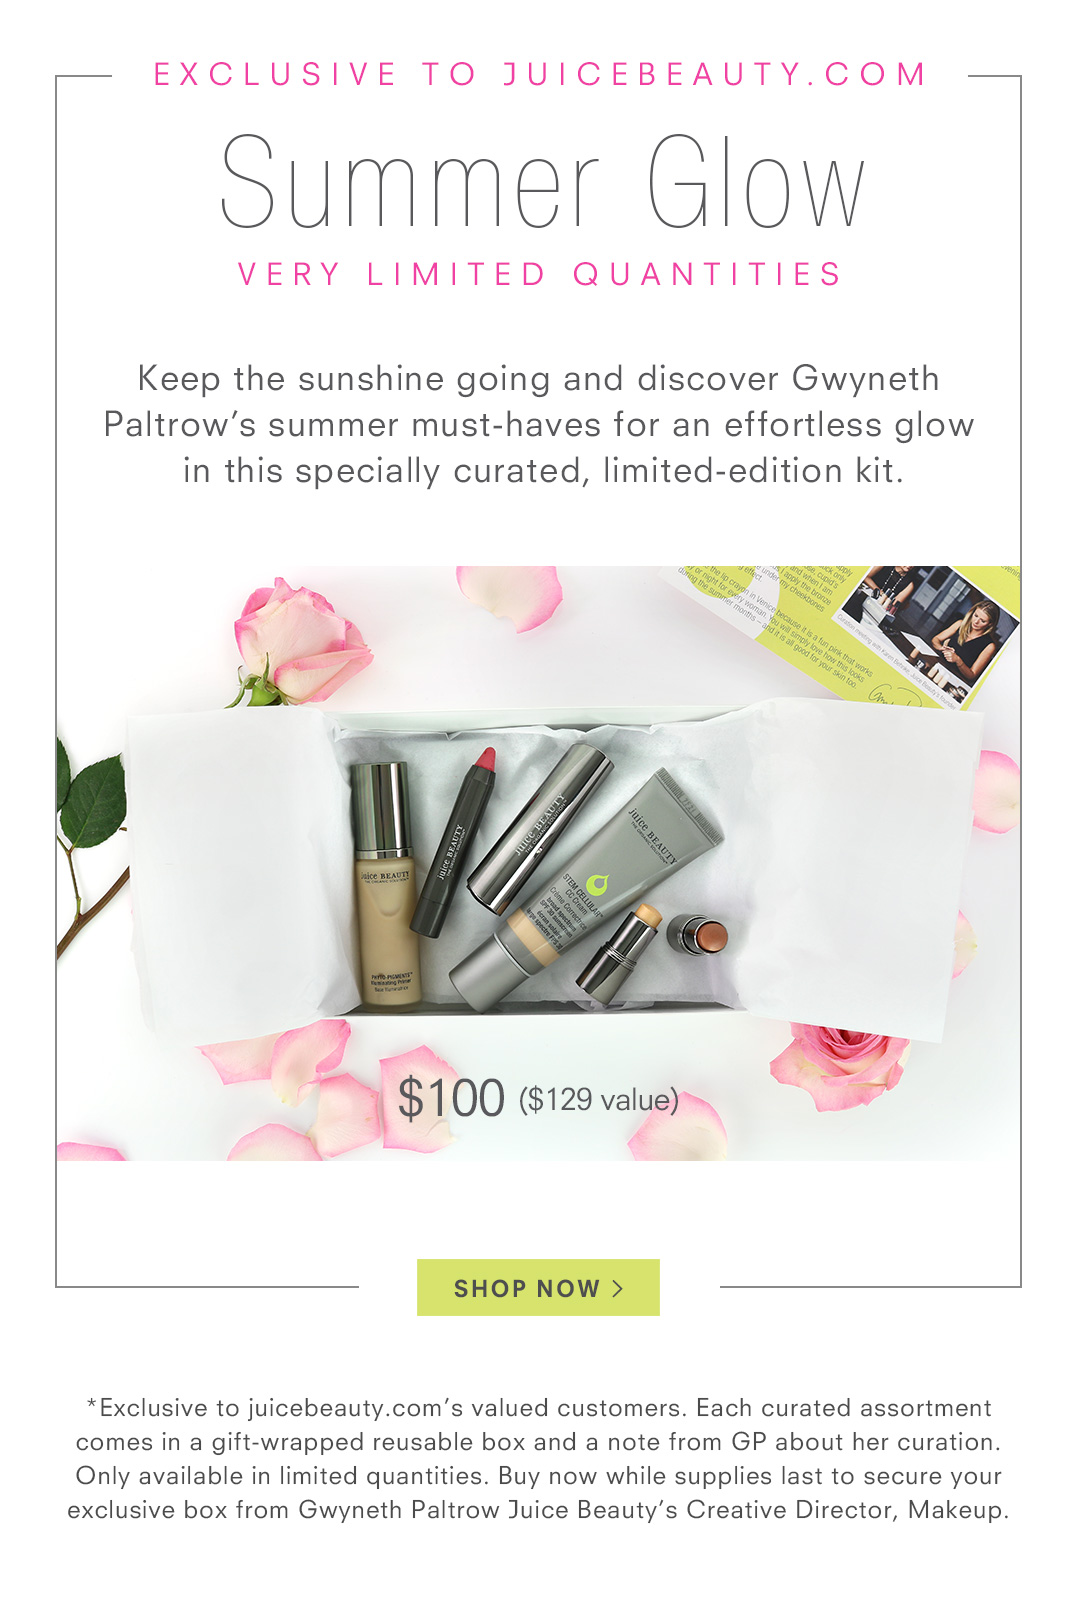 Gwyneth Paltrow's Limited Edition Curated Kit